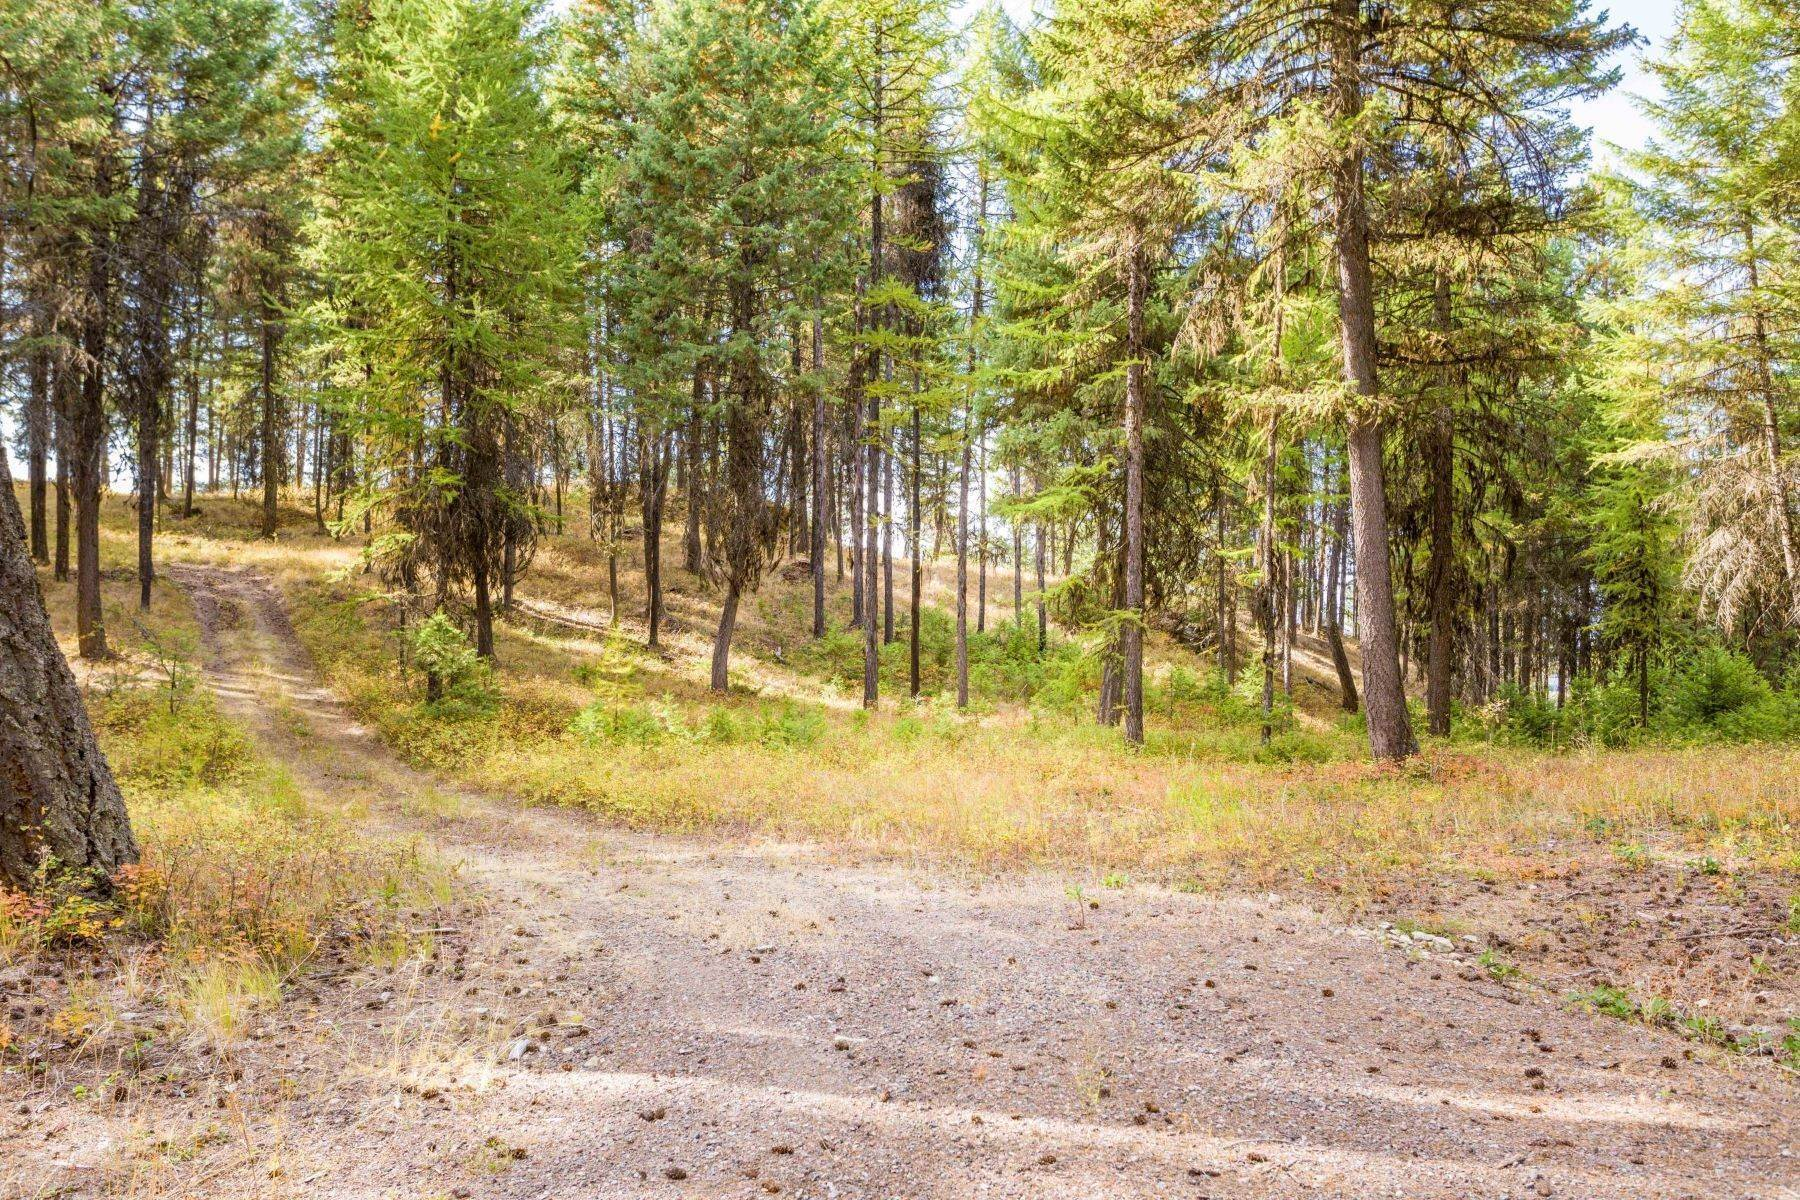 29. Land for Sale at Northwest Montana Forest, Meadows and Ponds 295 Garland Lane Whitefish, Montana 59937 United States